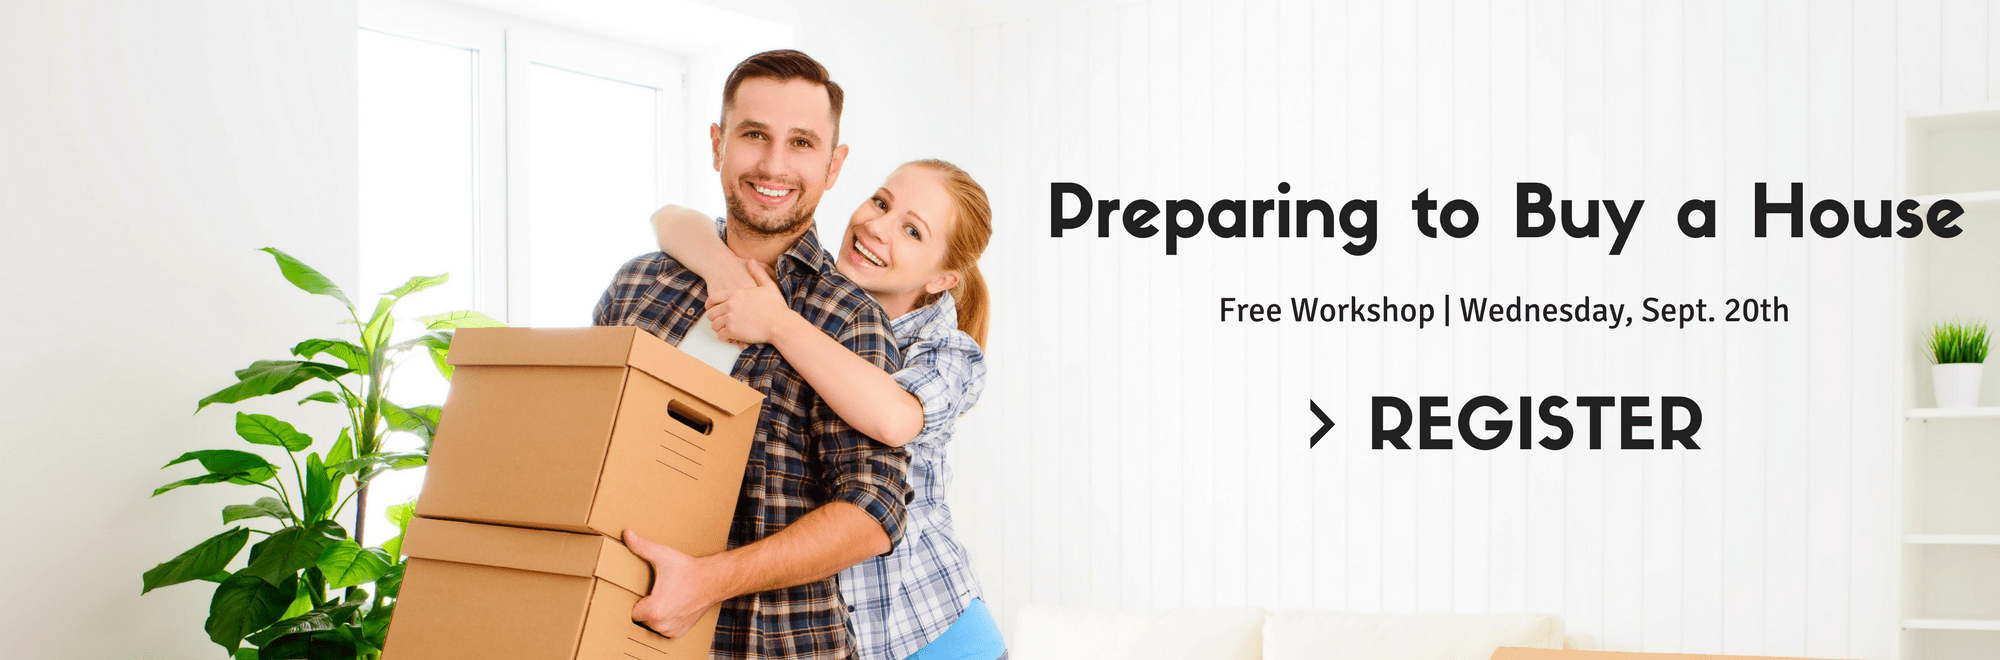 Preparing to Buy a House Web Banner